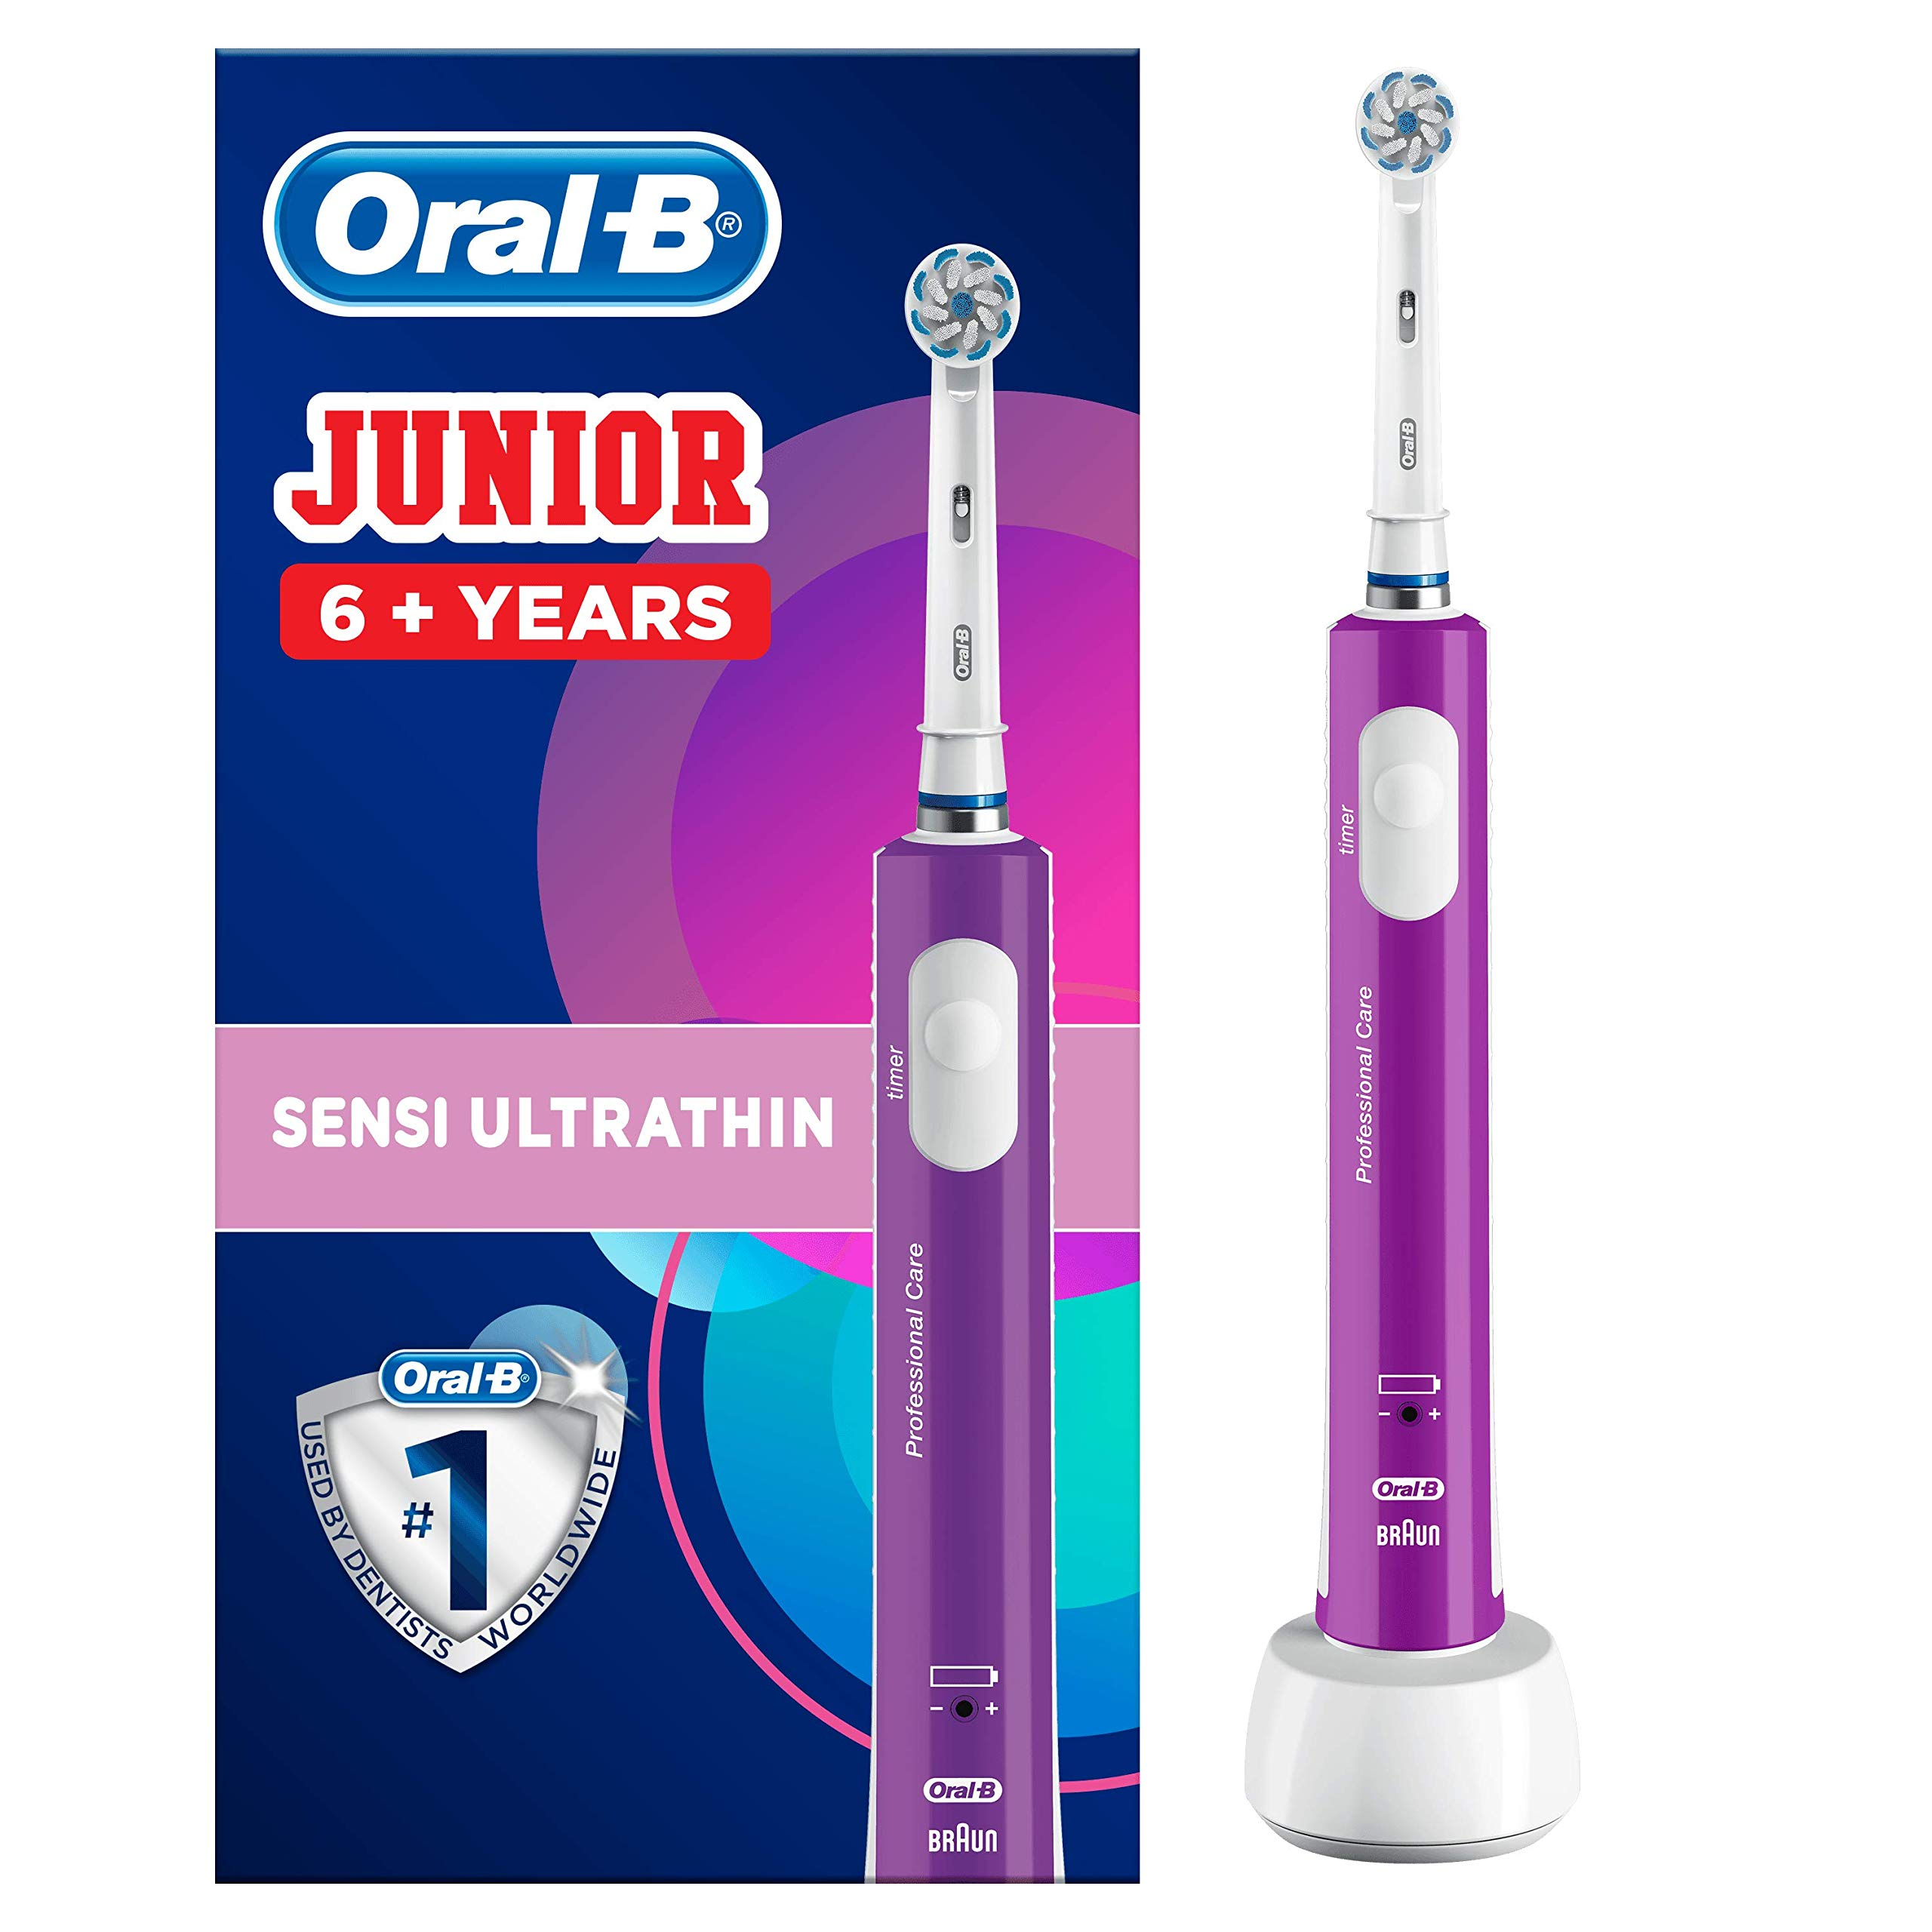 Oral-B Junior Kids Electric Rechargeable Toothbrush for Children Age 6-12, 1 Brush Handle and 1 Sensitive Toothbrush Replacement Head Powered by Braun, Purple, UK 2 Pin Plug, Stocking Filler for Kids